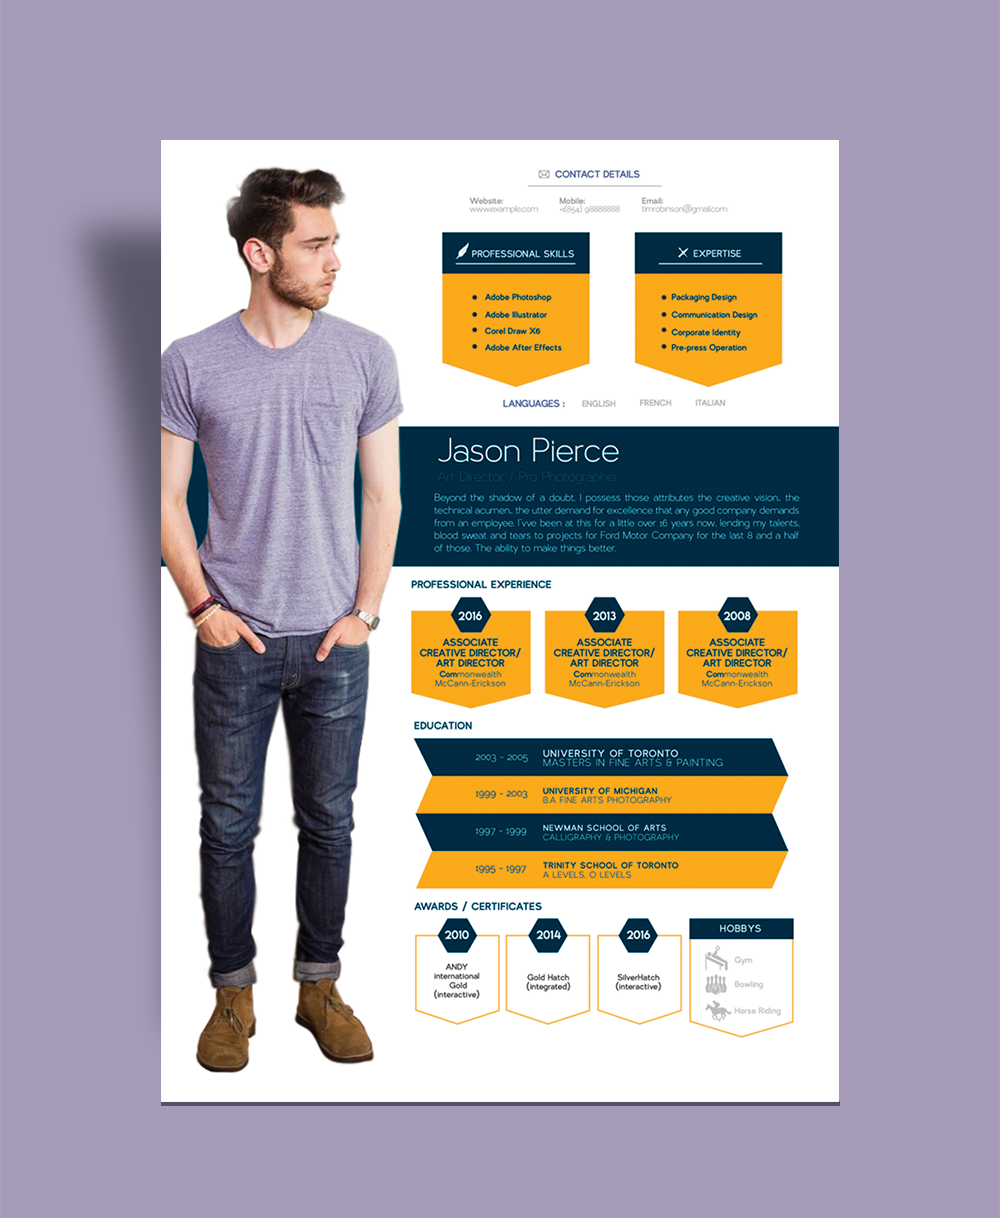 Creative Resume (CV) Design, Cover Letter Template, 4 PSD Mock-Ups & 100 Resume Icons (1)